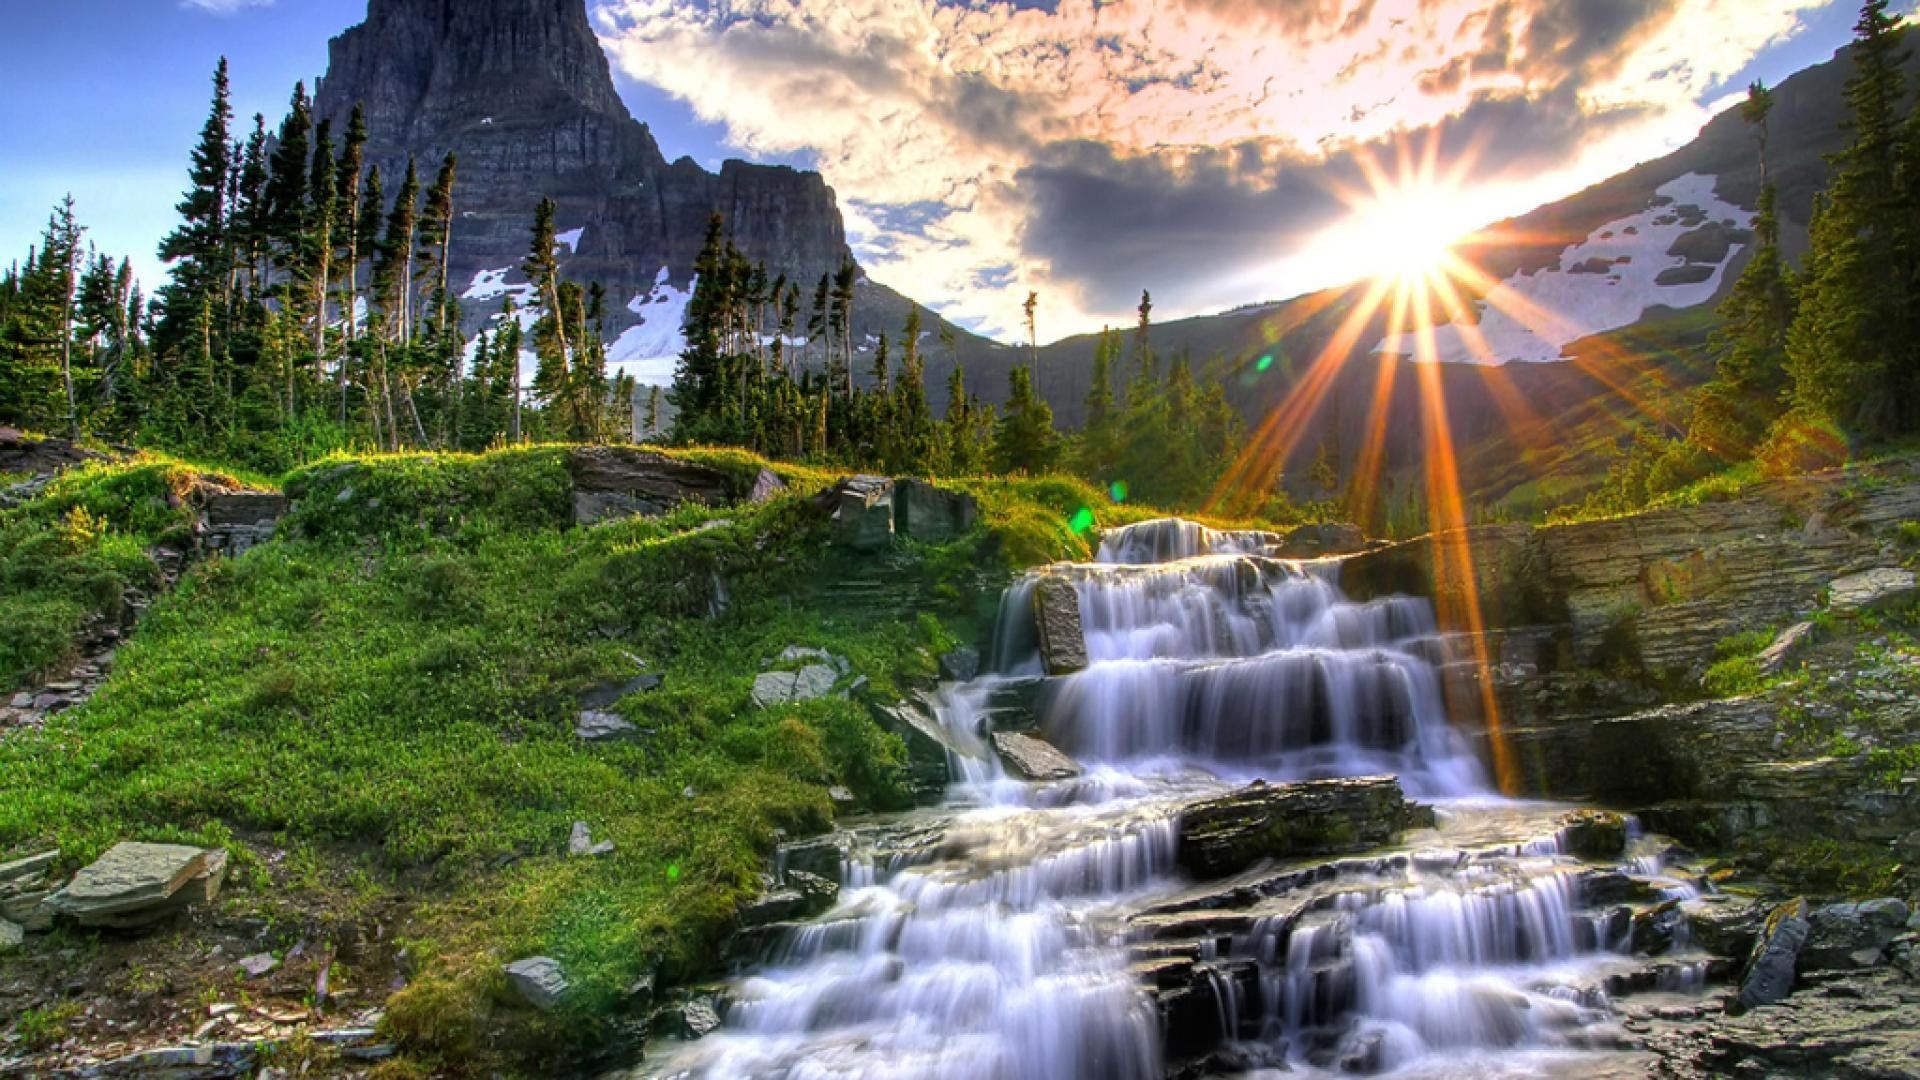 1080p Wallpapers Landscape 4 | 1080p Wallpapers Landscape | Pinterest |  Landscaping, Wallpaper and iOS